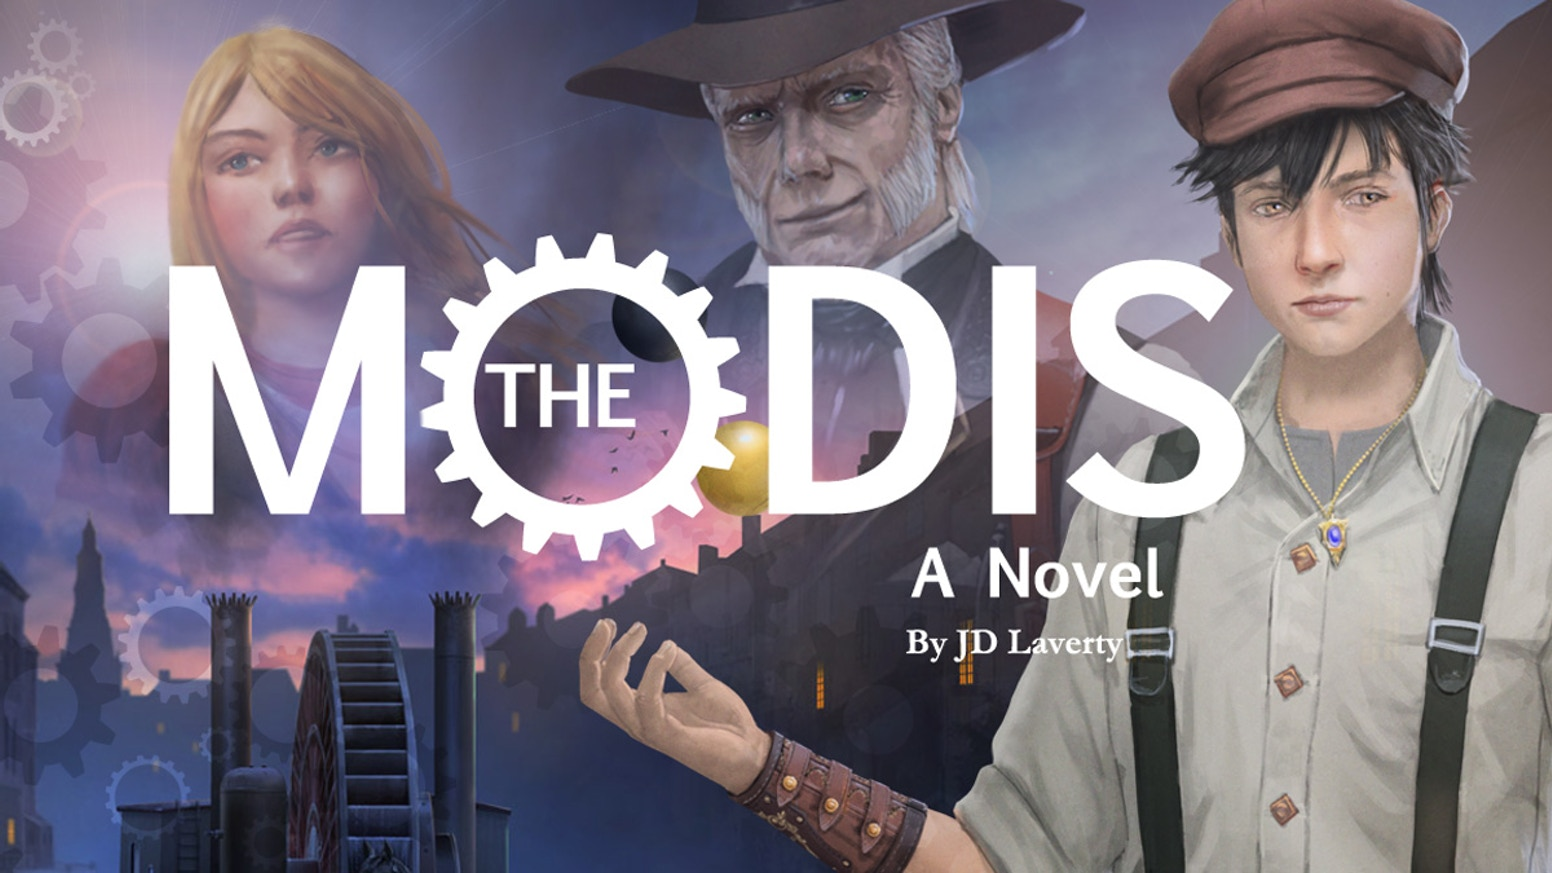 This Young Adult fiction is meeting the need for morally clean entertainment, while delivering an exciting adventure for young people. The Modis is an exciting steampunk adventure novel set in the early 1800s.